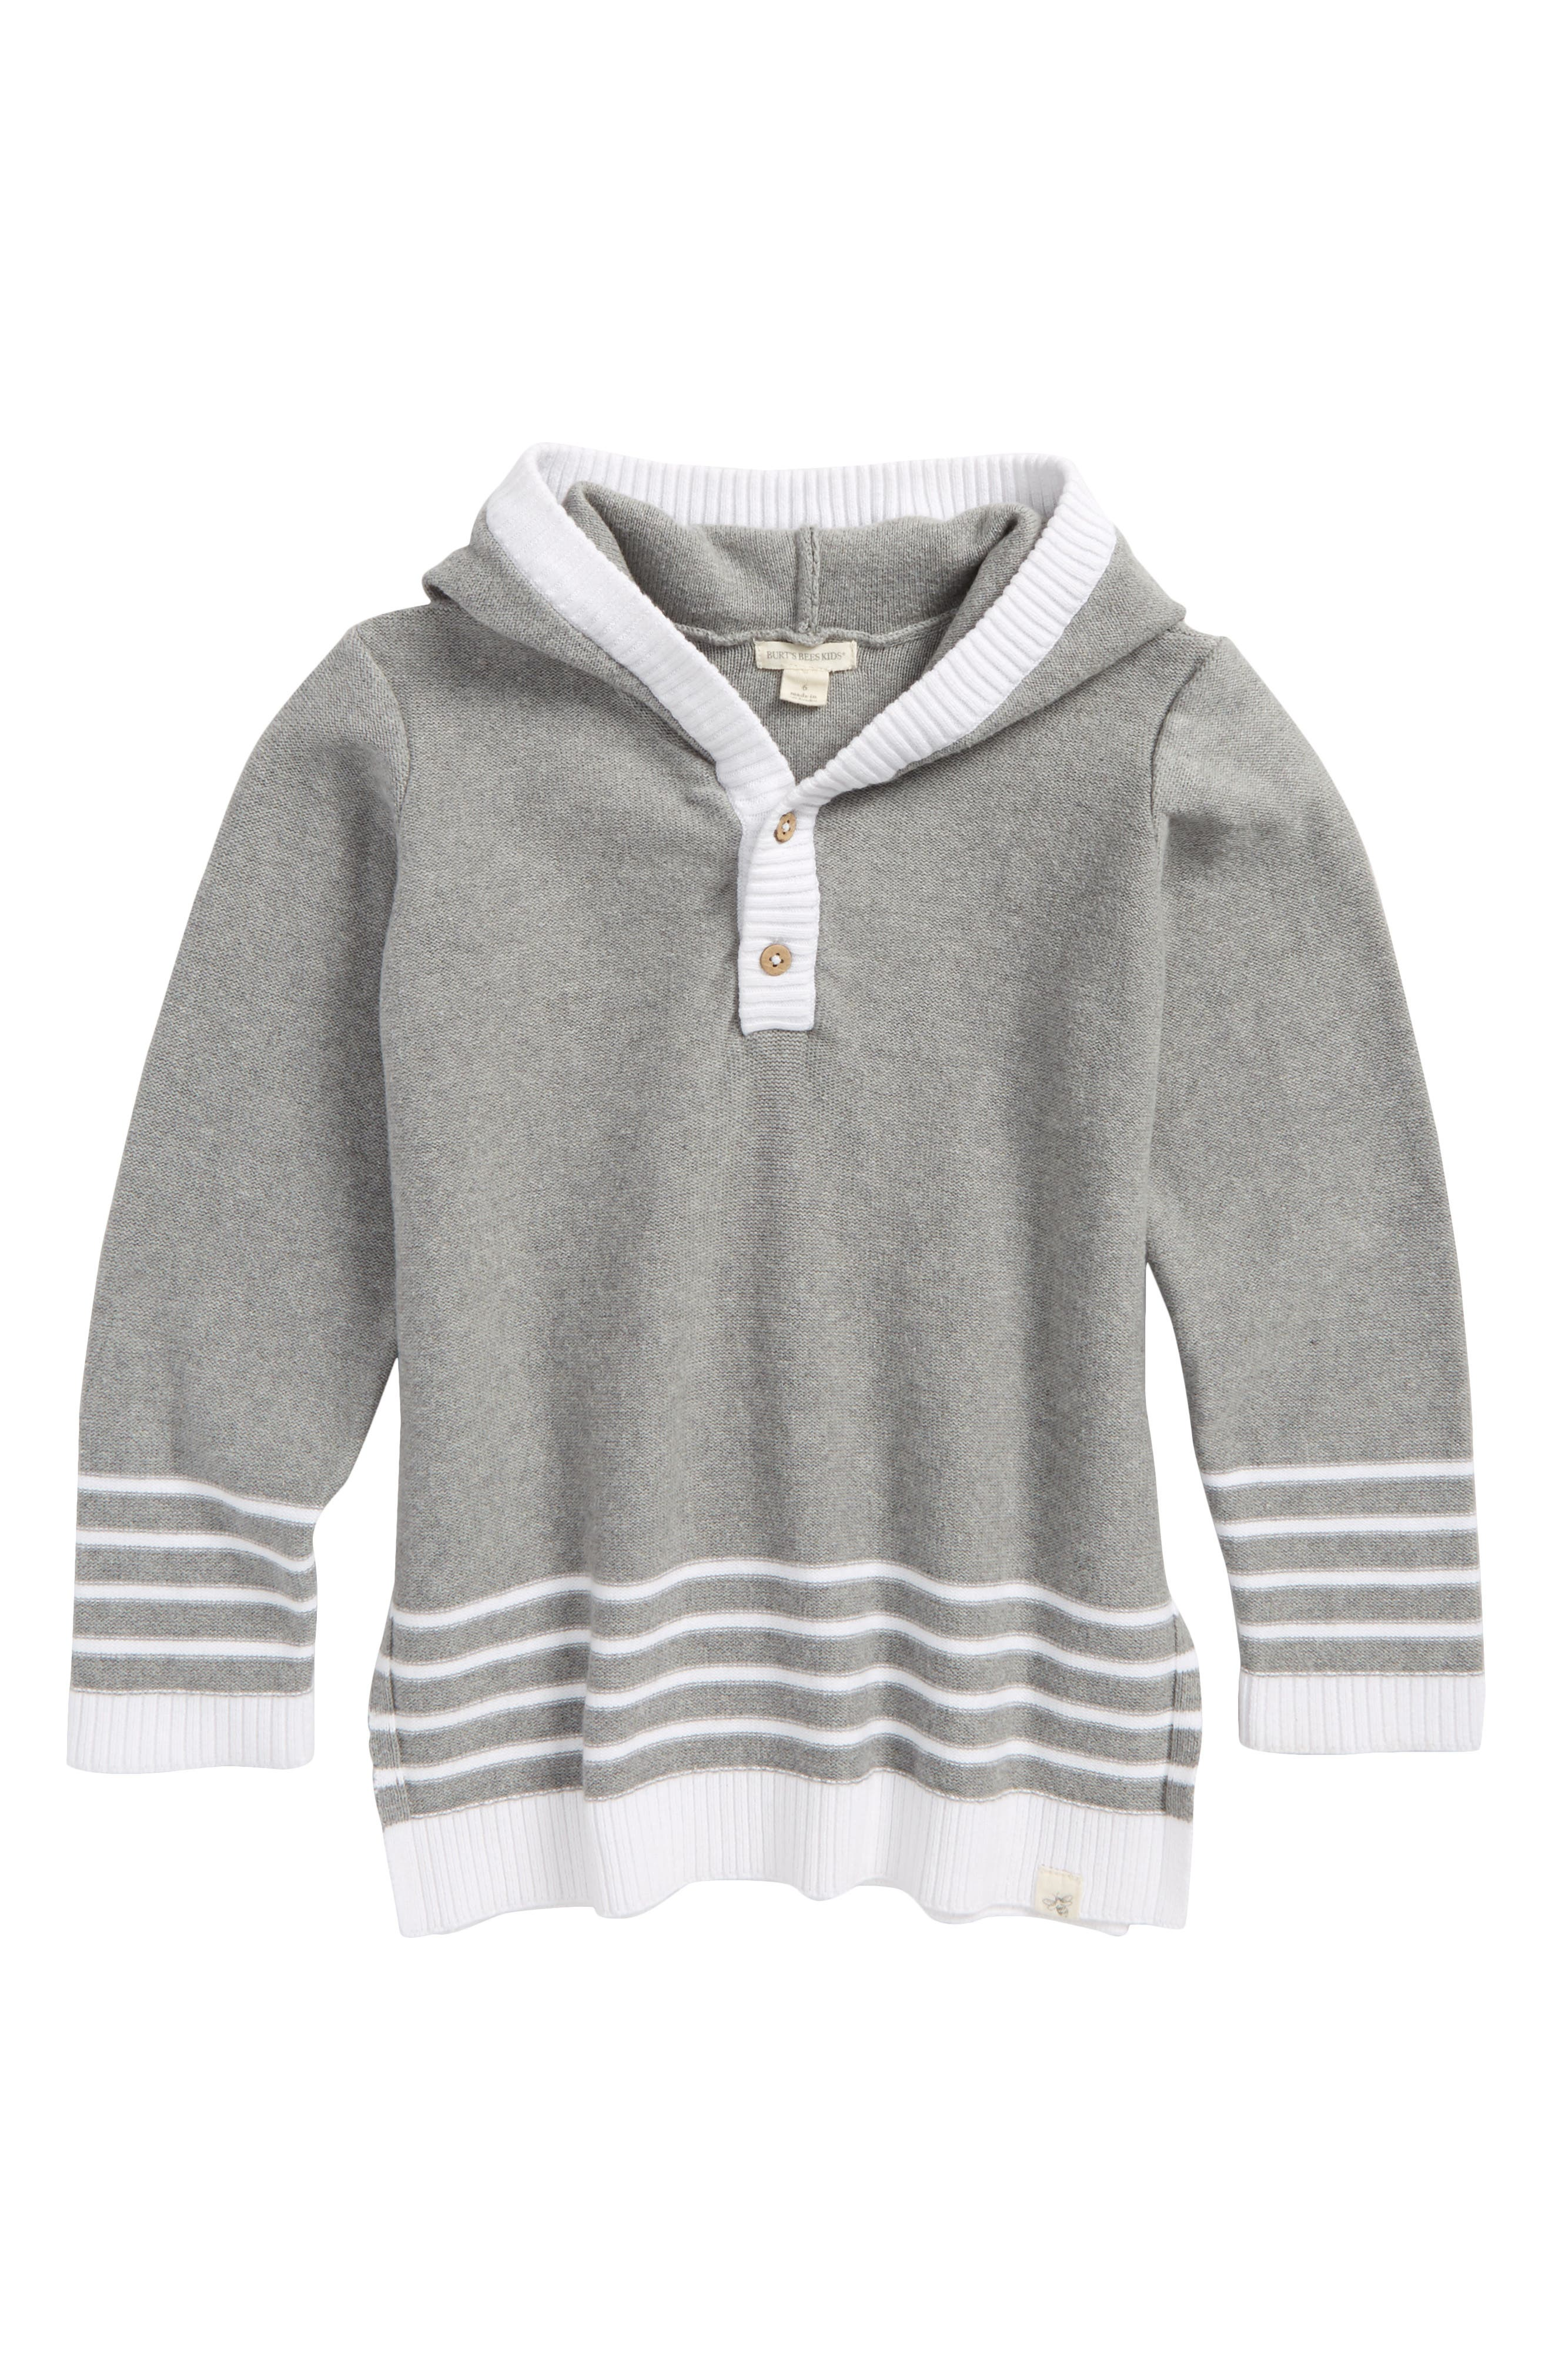 Alternate Image 1 Selected - Burt's Bees Baby Organic Cotton Knit Hoodie (Toddler Boys & Little Boys)